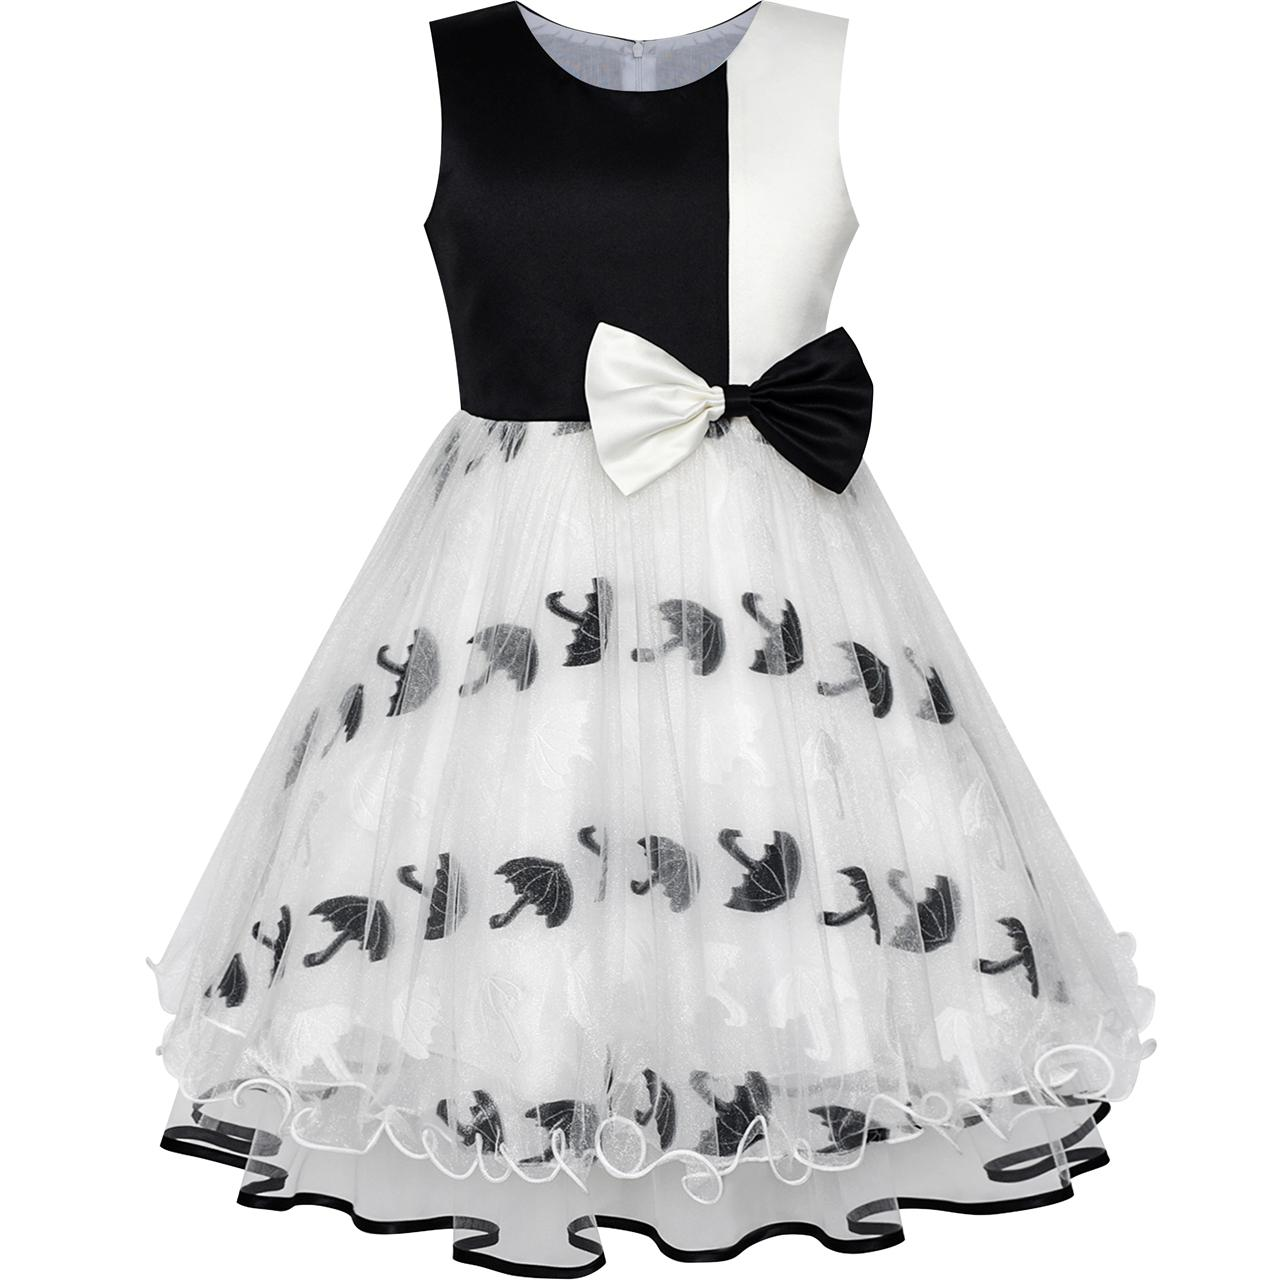 Flower     Girl     Dress   Bow Tie Black White Color Contrast Umbrella Sundress 2018 Summer Princess Wedding Size 4-12